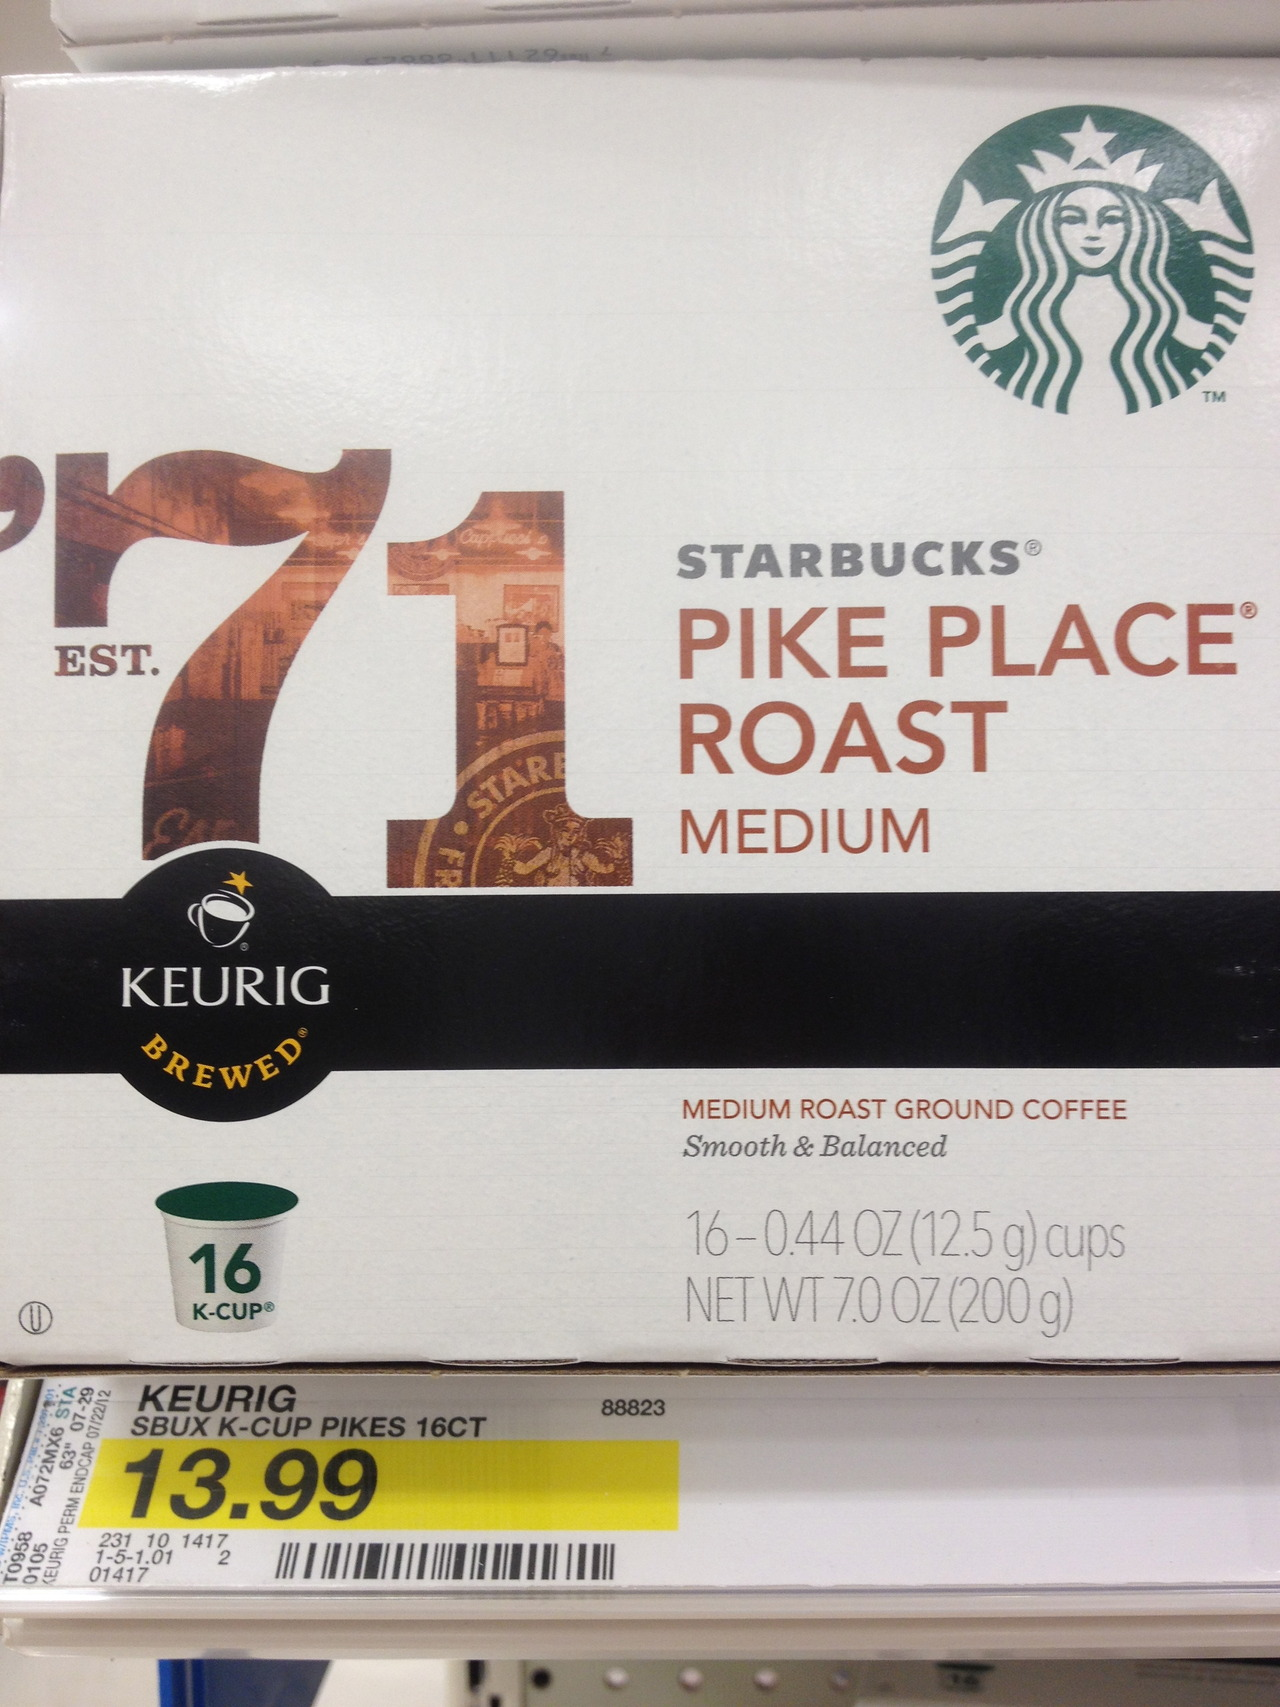 COFFEE AWARENESS MONTH, DAY 2: K-CUPS SUCK. Got a single-serve machine? You may not realize how much you're paying. This is an average priced package, found locally at Target, of 16 K-Cups. Do the math, and you'll see you're paying $32 per pound for this coffee (which, by the way, was likely roasted up to a year ago, then ground up and put into a non-recyclable cup). For literally half the price, you can get beans that are less than three weeks old — not to mention roasted just right and ethically sourced — and save the rest of your hard-earned money for something else. Want to know more about buying and brewing great coffee? It's cheaper, and easier, than you think. Join us on at 1 p.m. this Saturday, Oct. 6, for free tastings of some of the world's best coffees as Spencer's owner Justin Shepherd walks you through the frugal fun of brewing fabulous coffee at home.